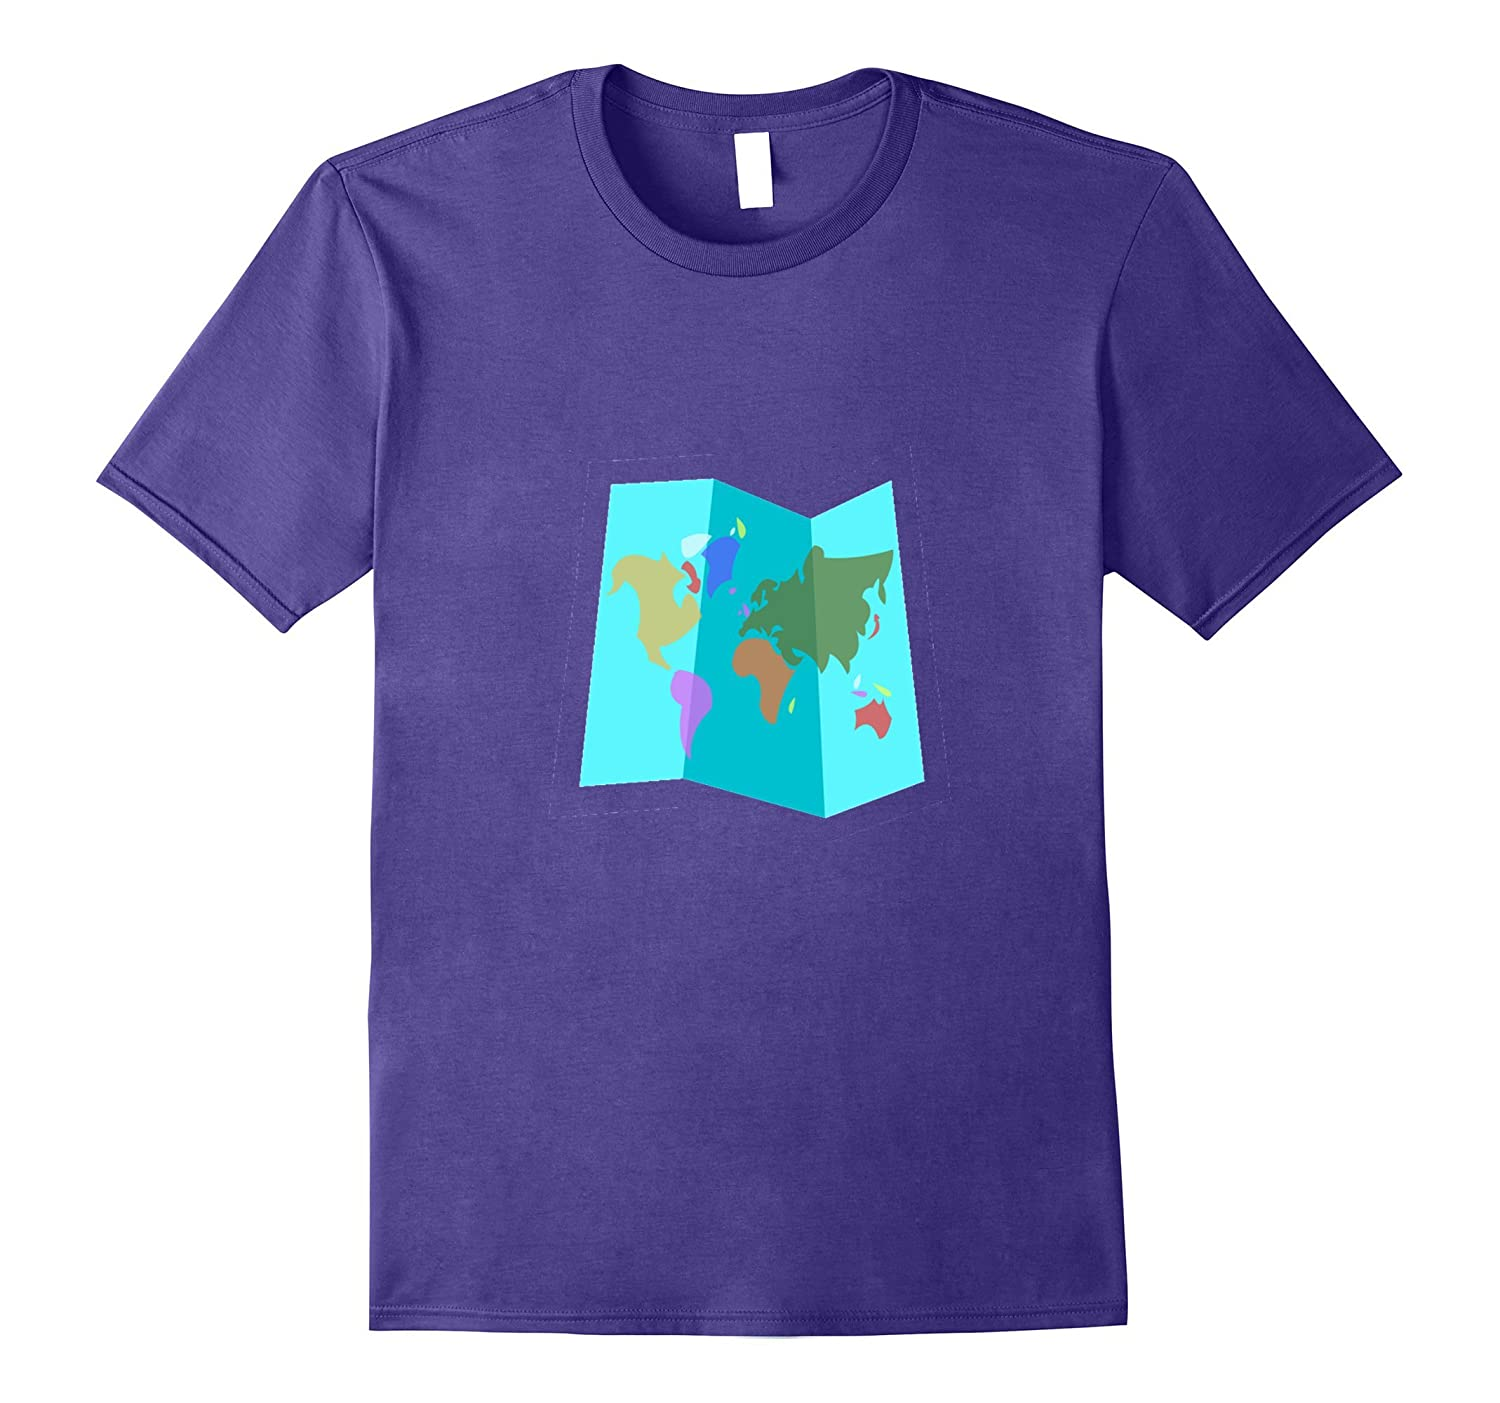 World map t shirt continents countries oceans globe anz anztshirt world map t shirt continents countries oceans globe anz gumiabroncs Images